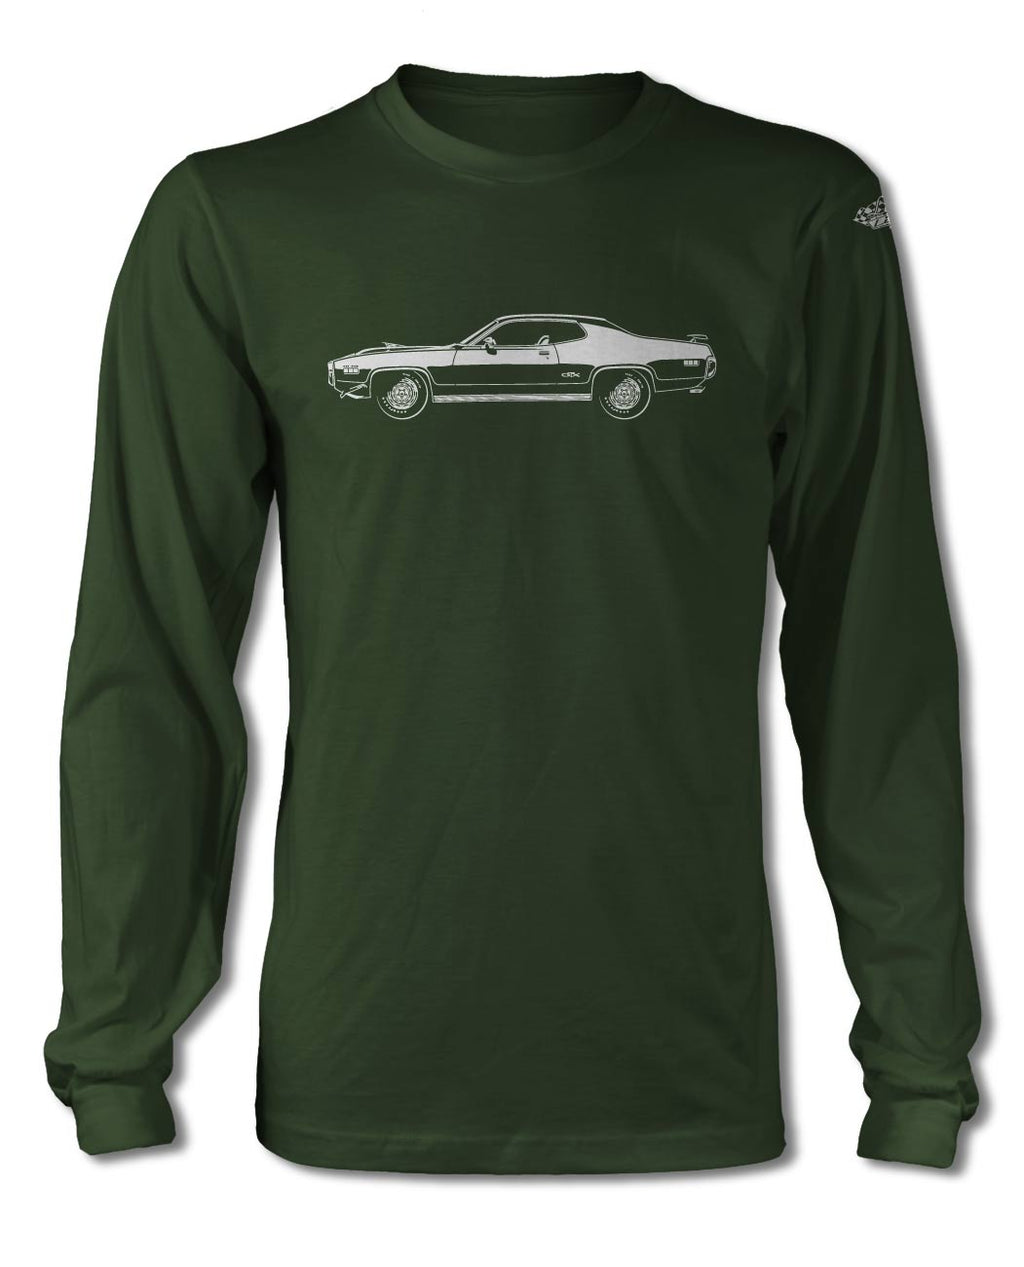 1971 Plymouth GTX HEMI Coupe T-Shirt - Long Sleeves - Side View